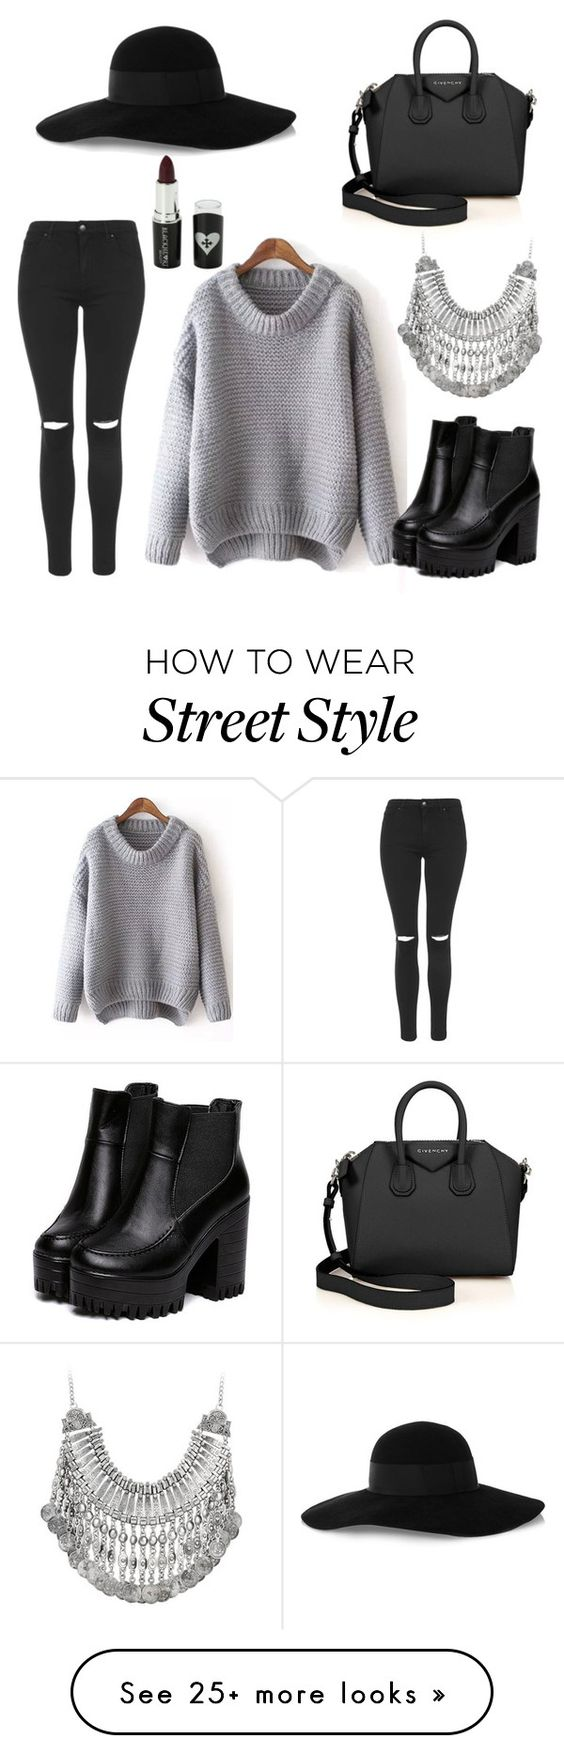 Street Style Casual By Chloebreann On Polyvore Featuring